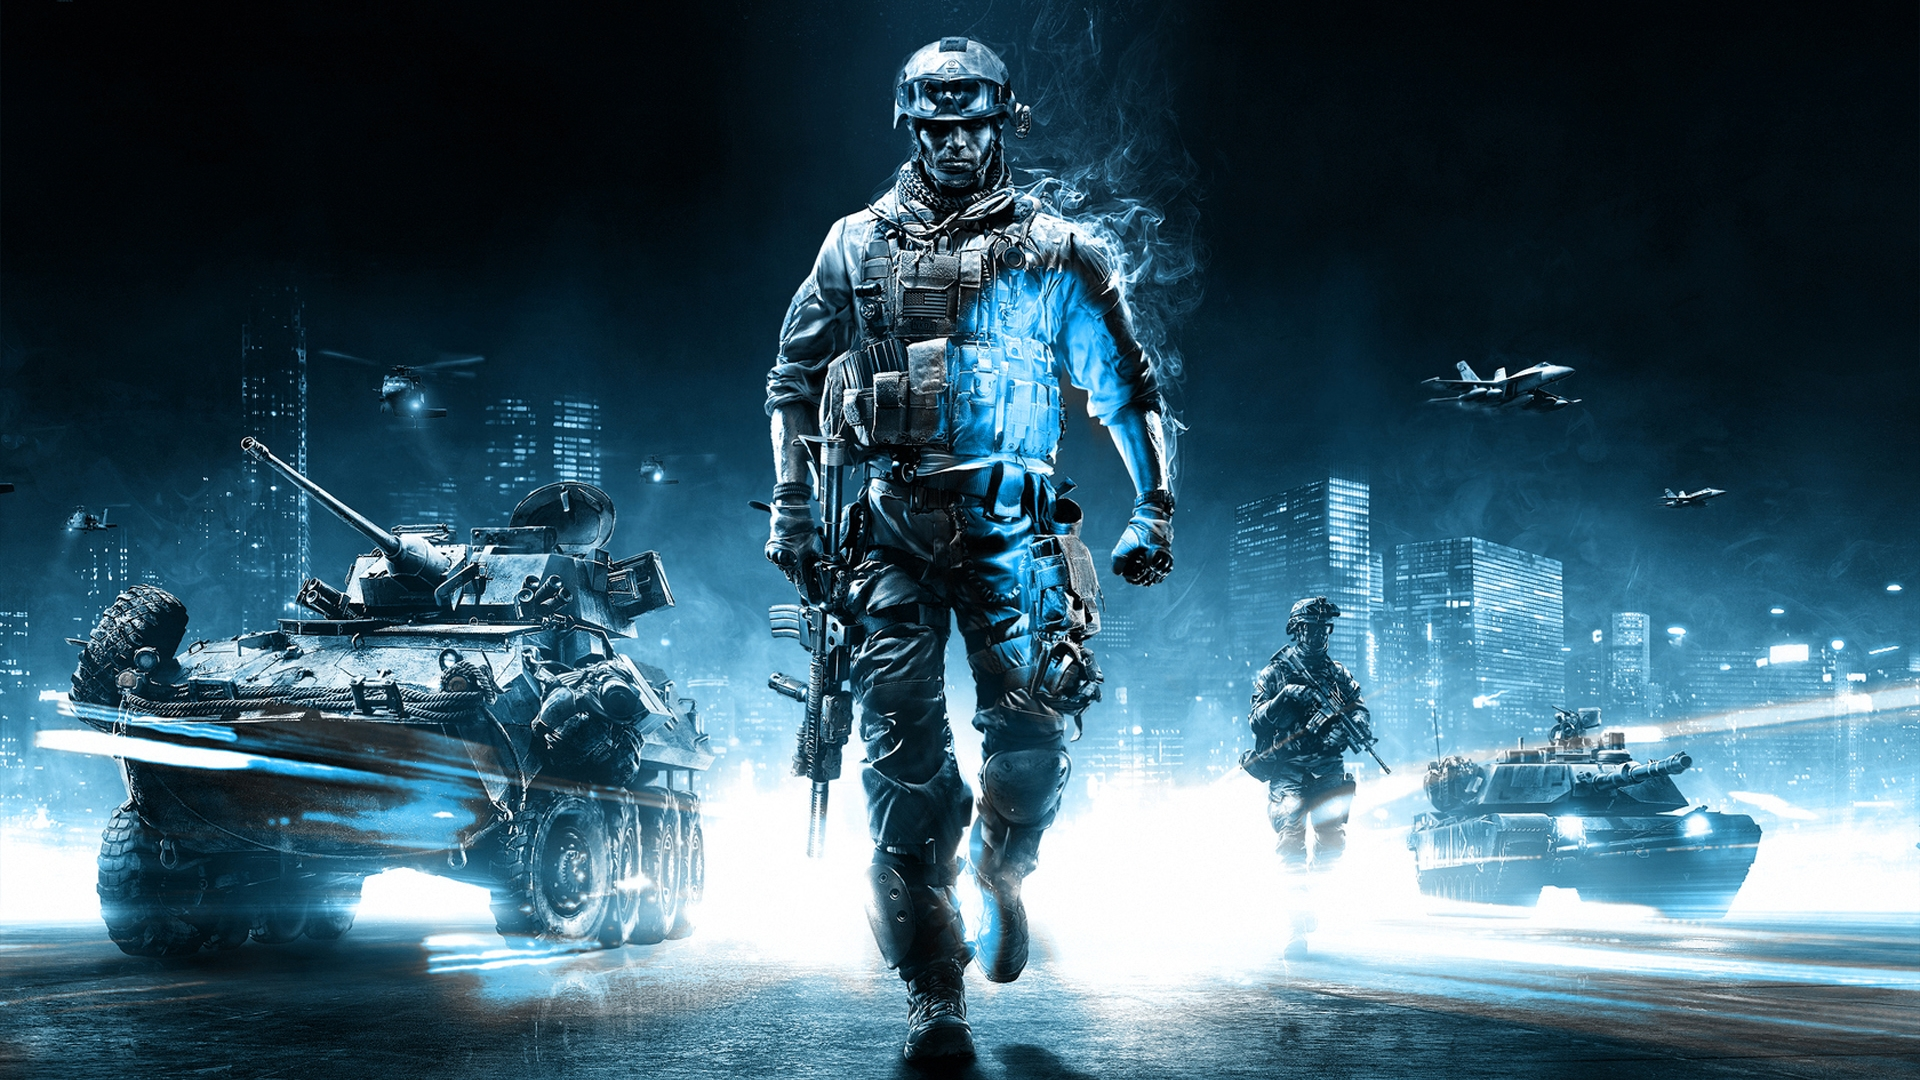 Battlefield 3 French Commander #6974518 7 Themes  - battlefield 3 french commander wallpapers